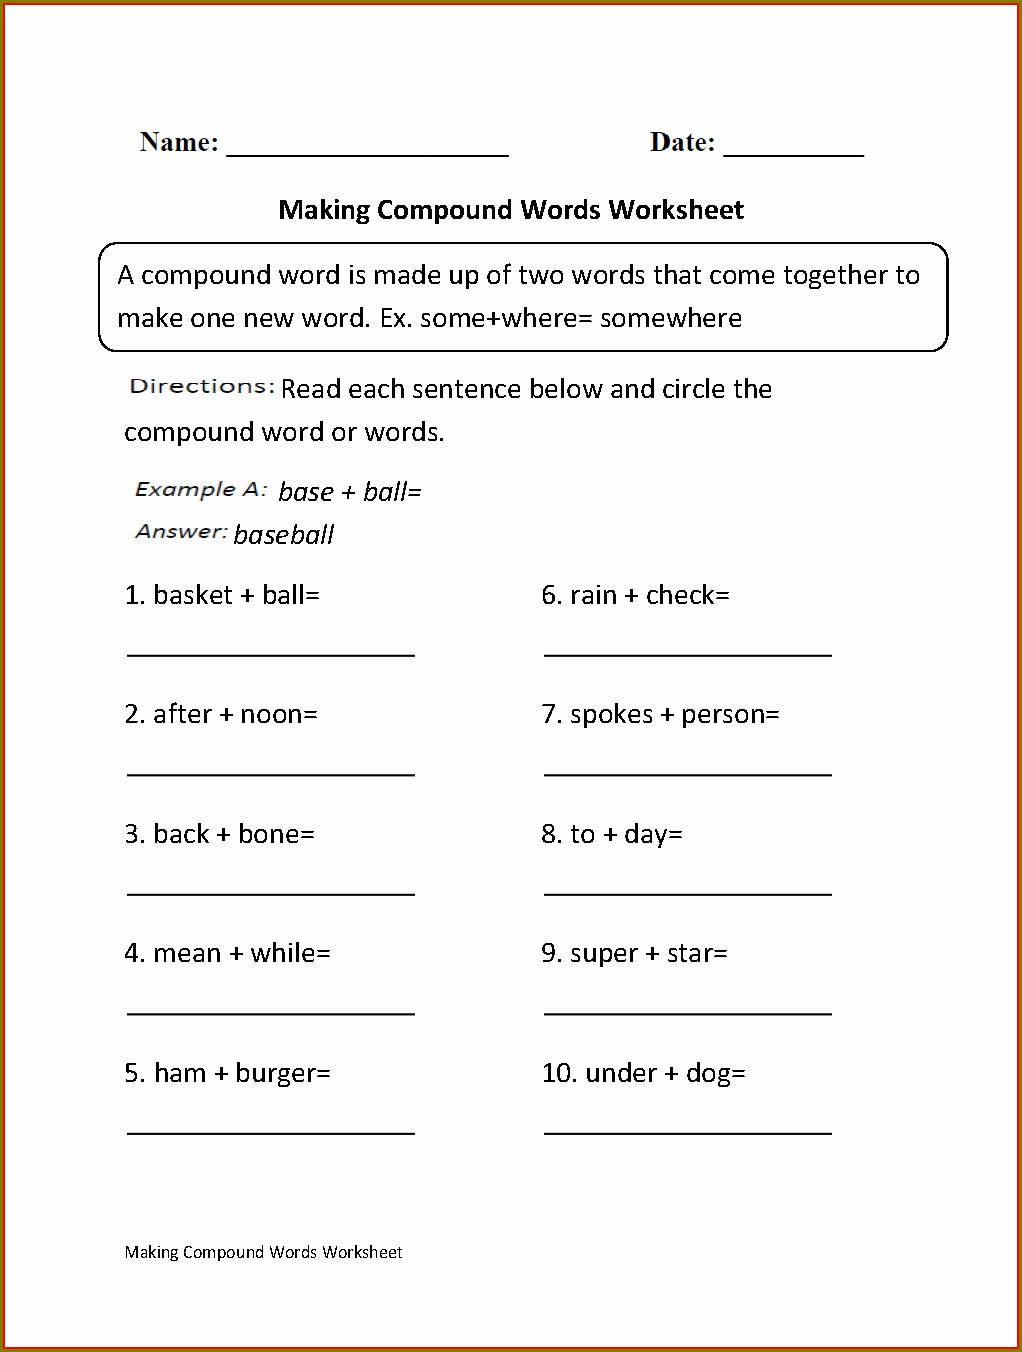 Compound Words Worksheet For Grade 5